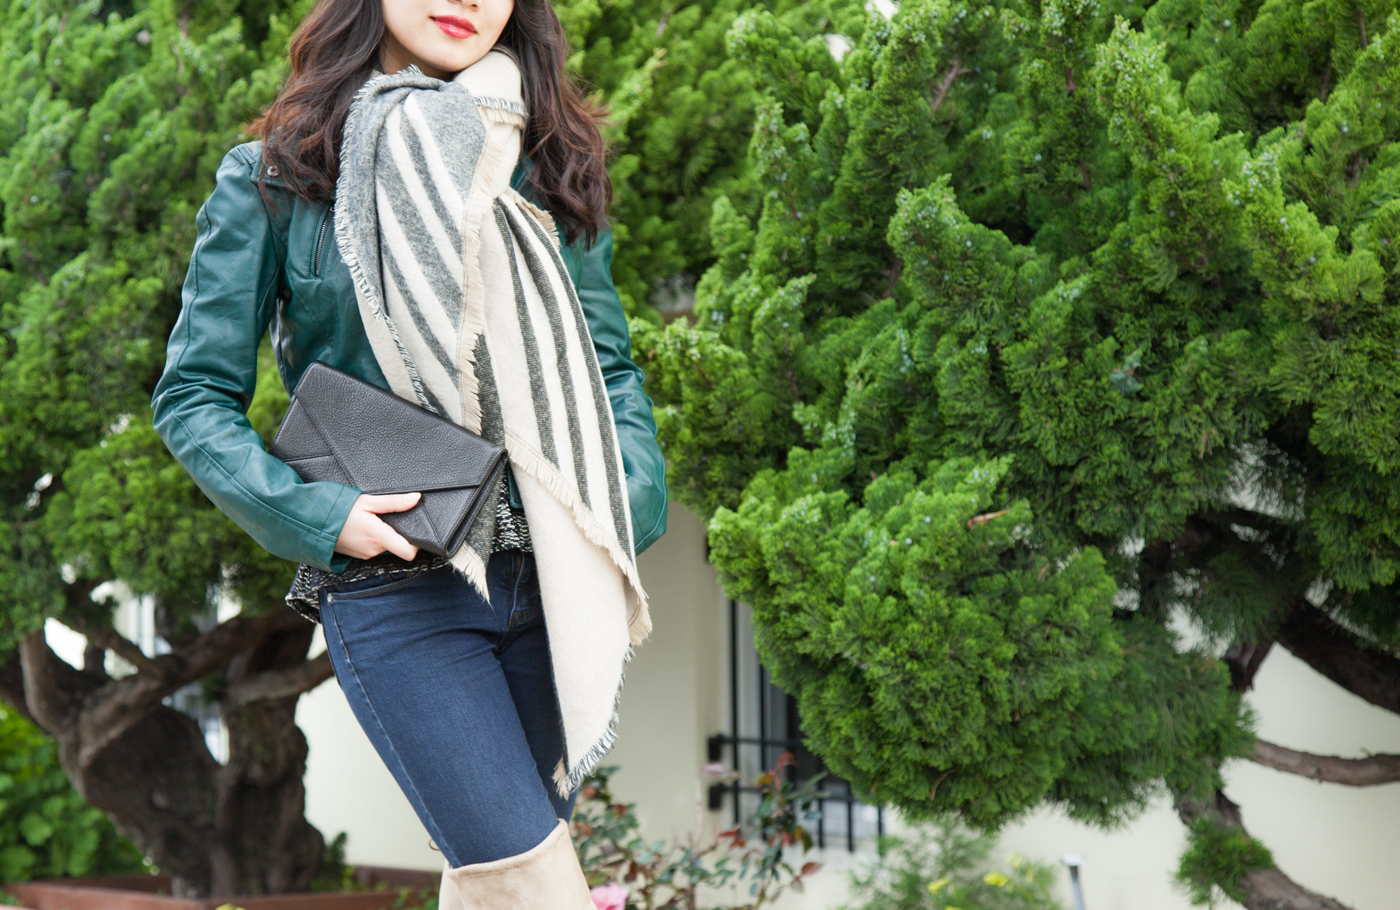 04.12.16: Neutral Warmth | Blanket Scarf & Knee-High Boots